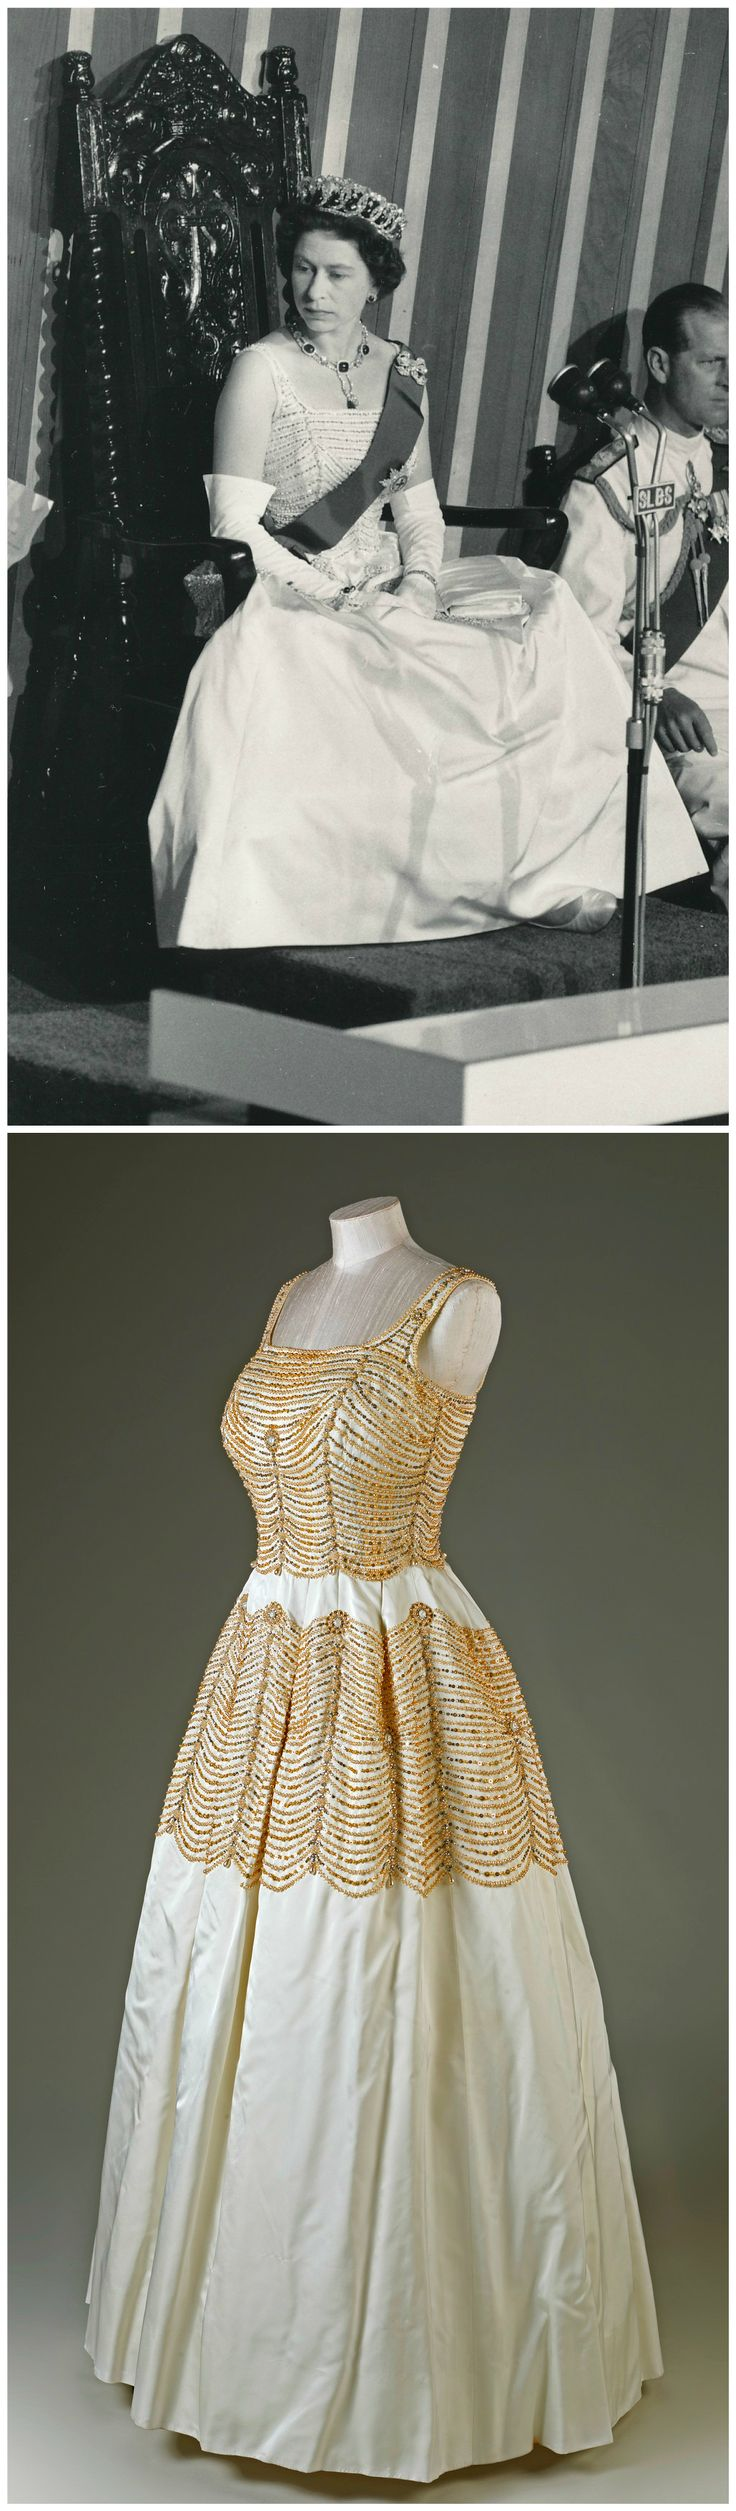 Evening gown, by Sir Norman Hartnell, 1960. Duchesse satin, pearls, sequins, beads, diamantes. Royal Collection Trust/All Rights Reserved. H.M. Queen Elizabeth II wore the gown to the opening of Parliament in Freetown, Sierra Leone, on December 12, 1961 (see above photo, via romanbenedikhanson on Flickr).